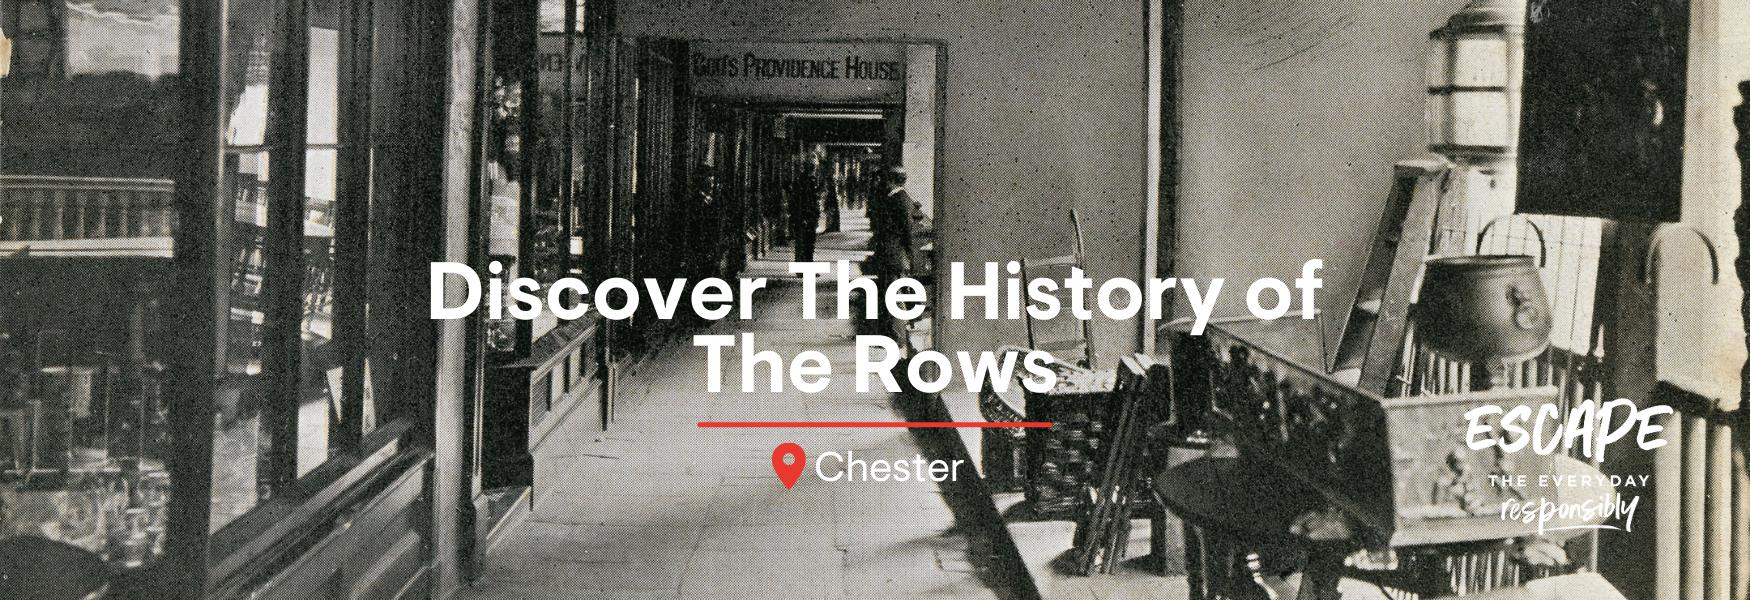 The History of The Rows